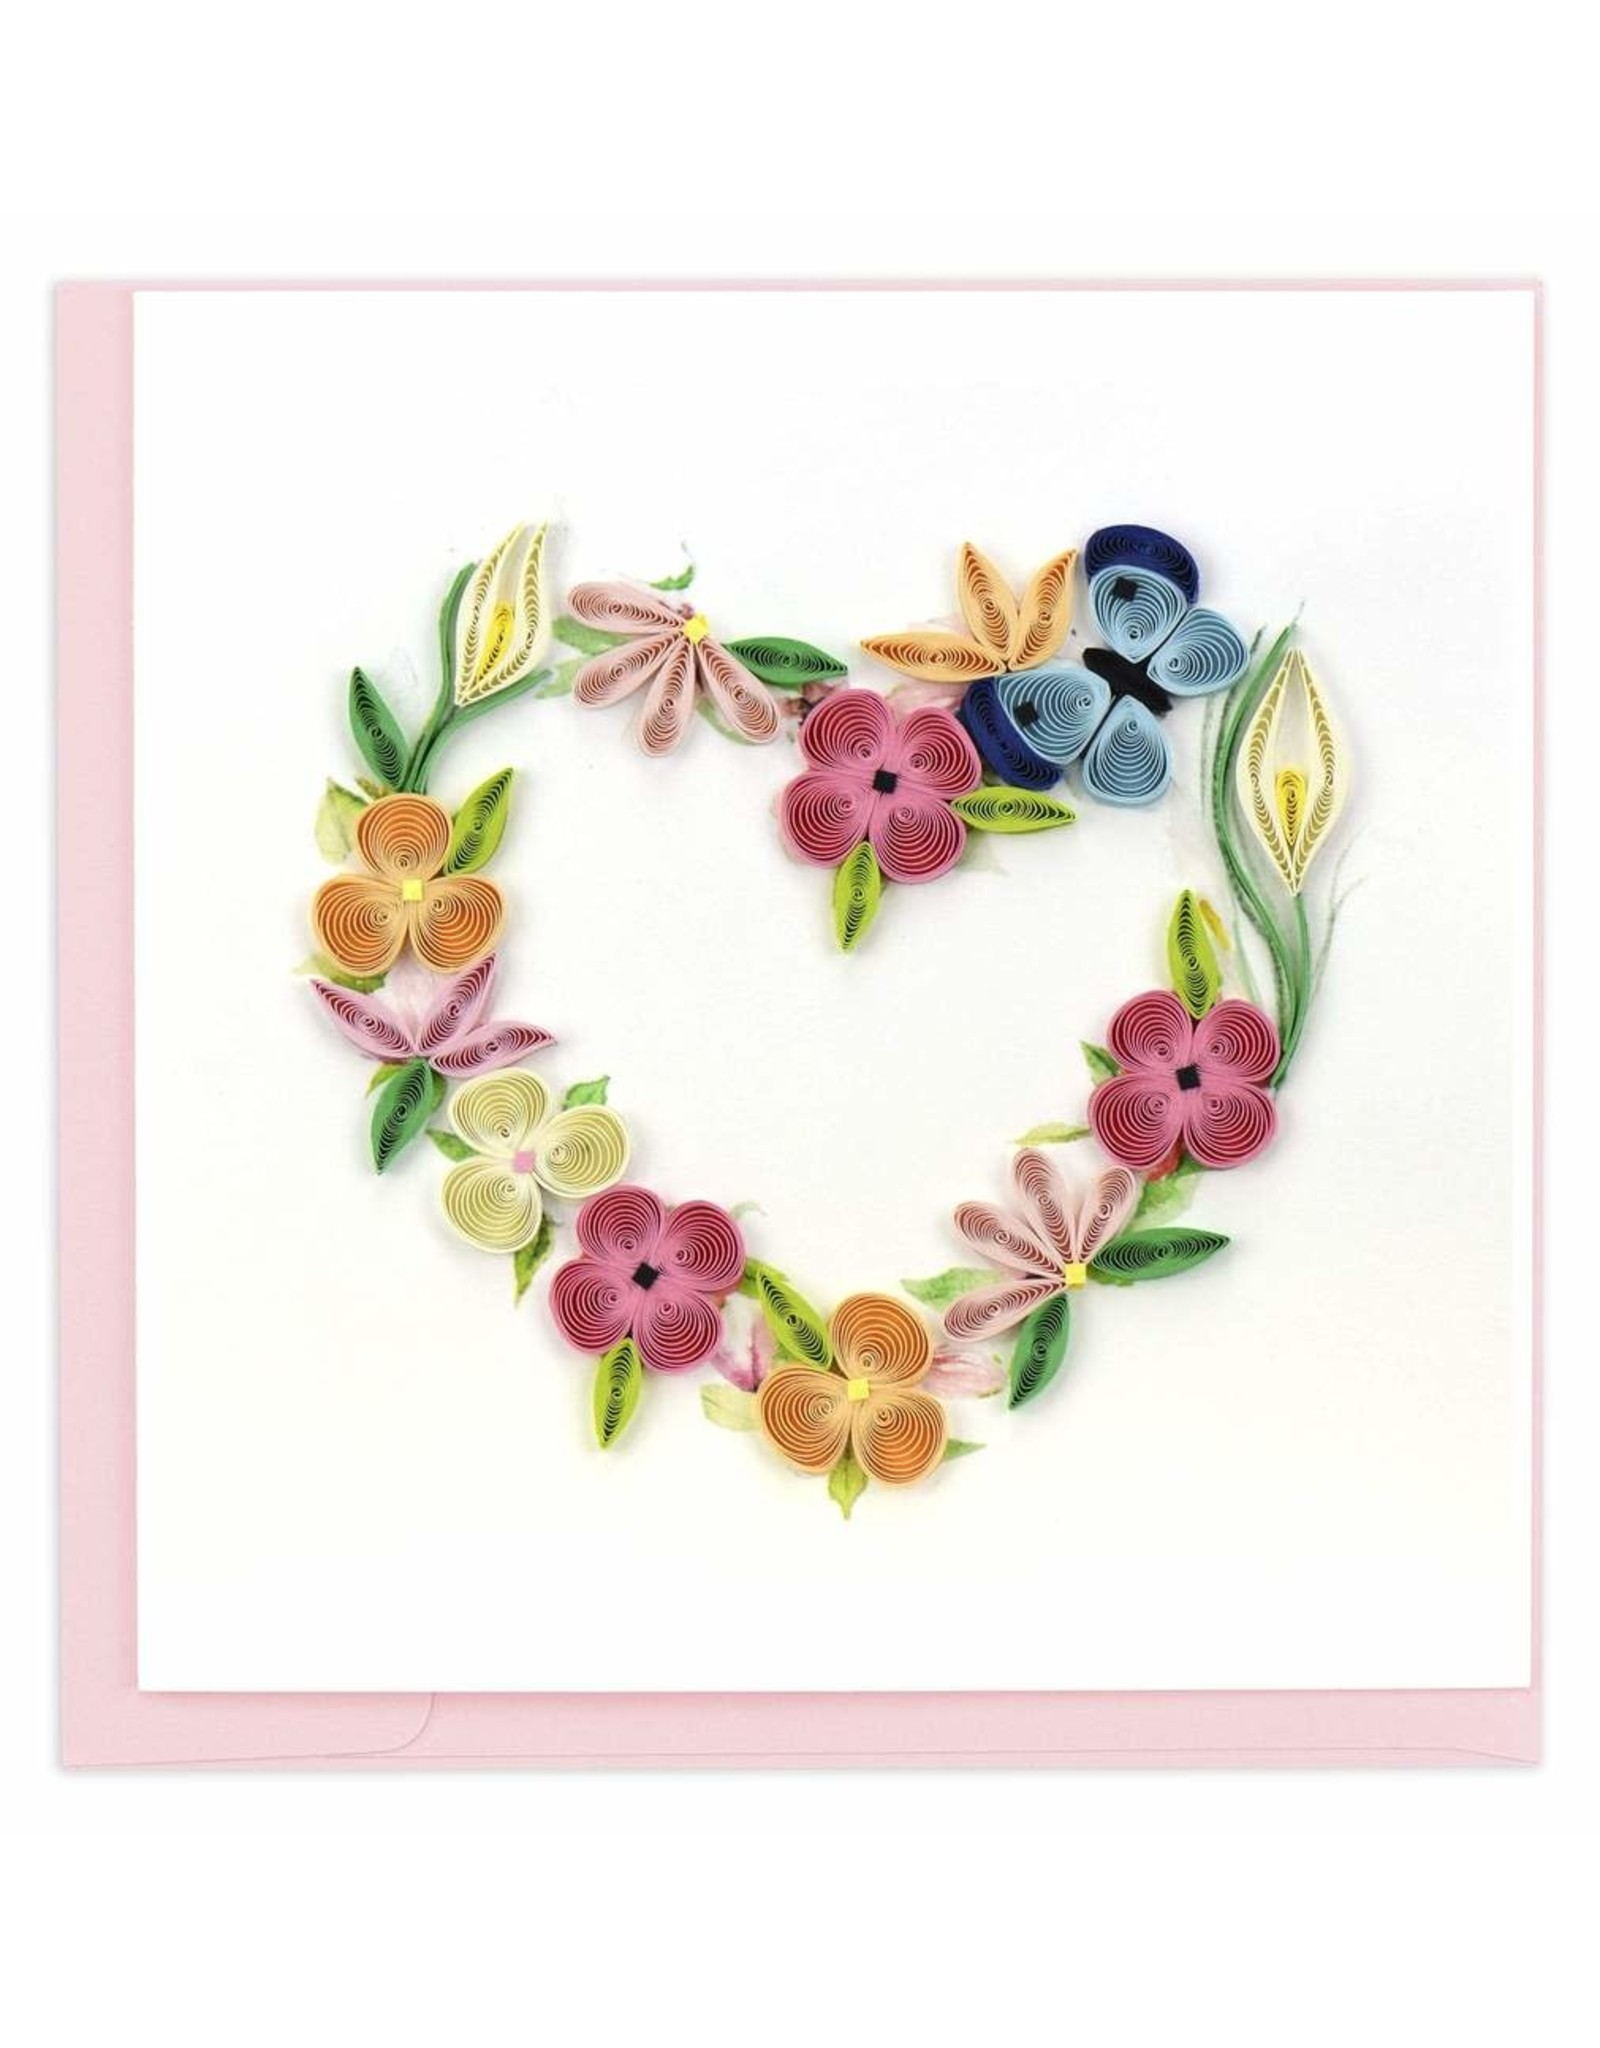 quillingcard Quilled Card, Floral Heart Wreath. Vietnam